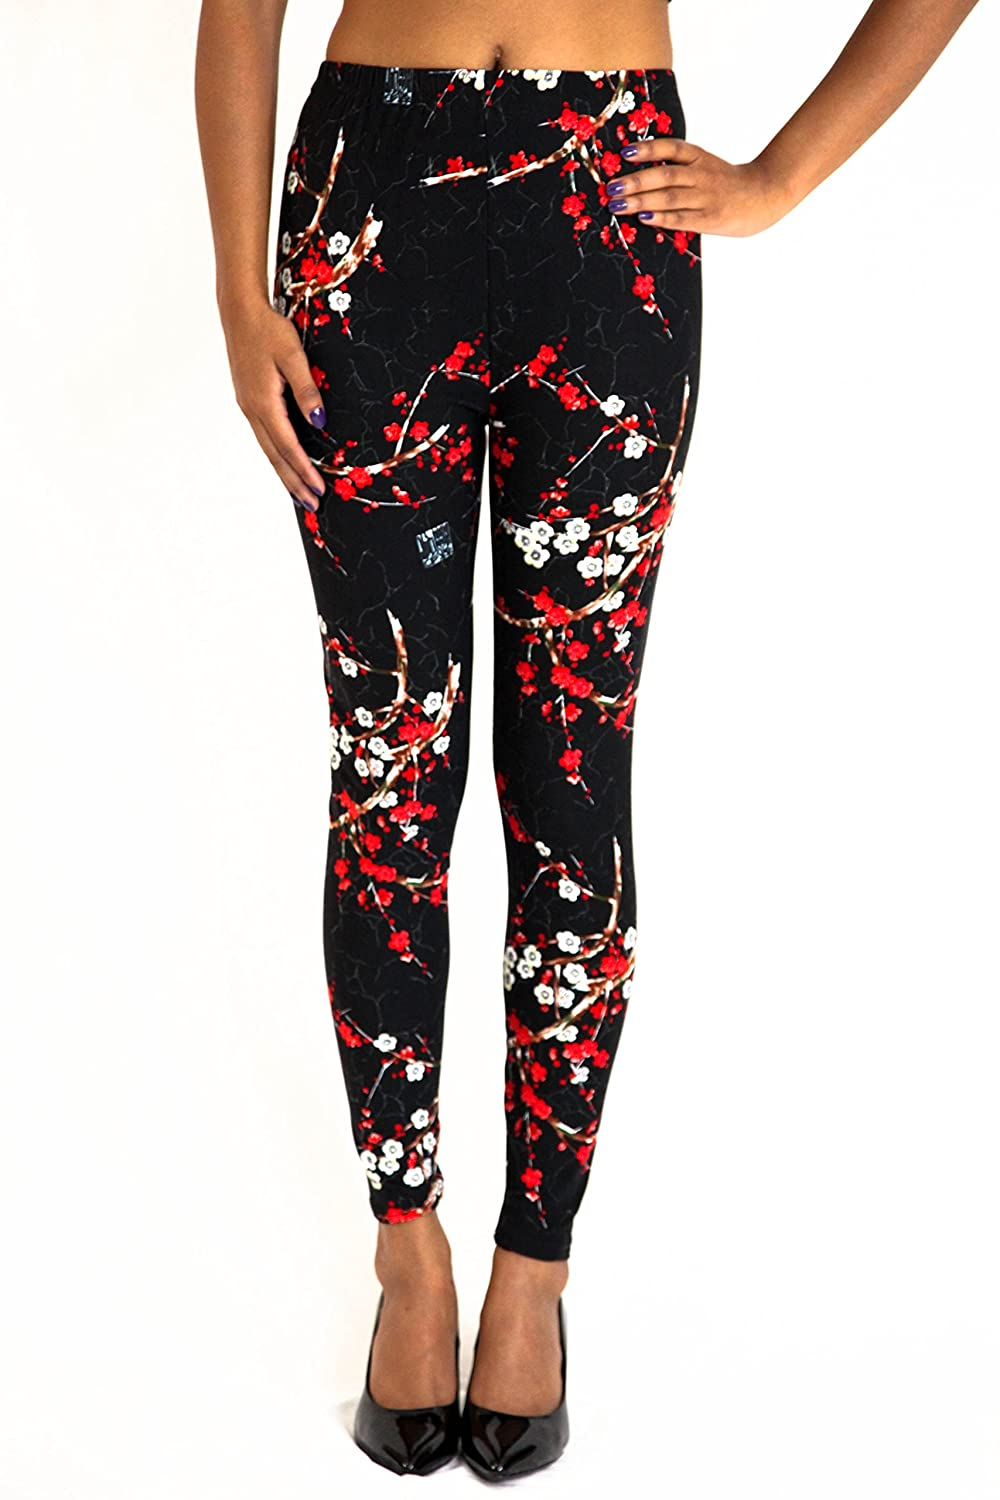 Women Plus Leggings Size 14-22 Red Floral Print Tights Black Stretchy Pants